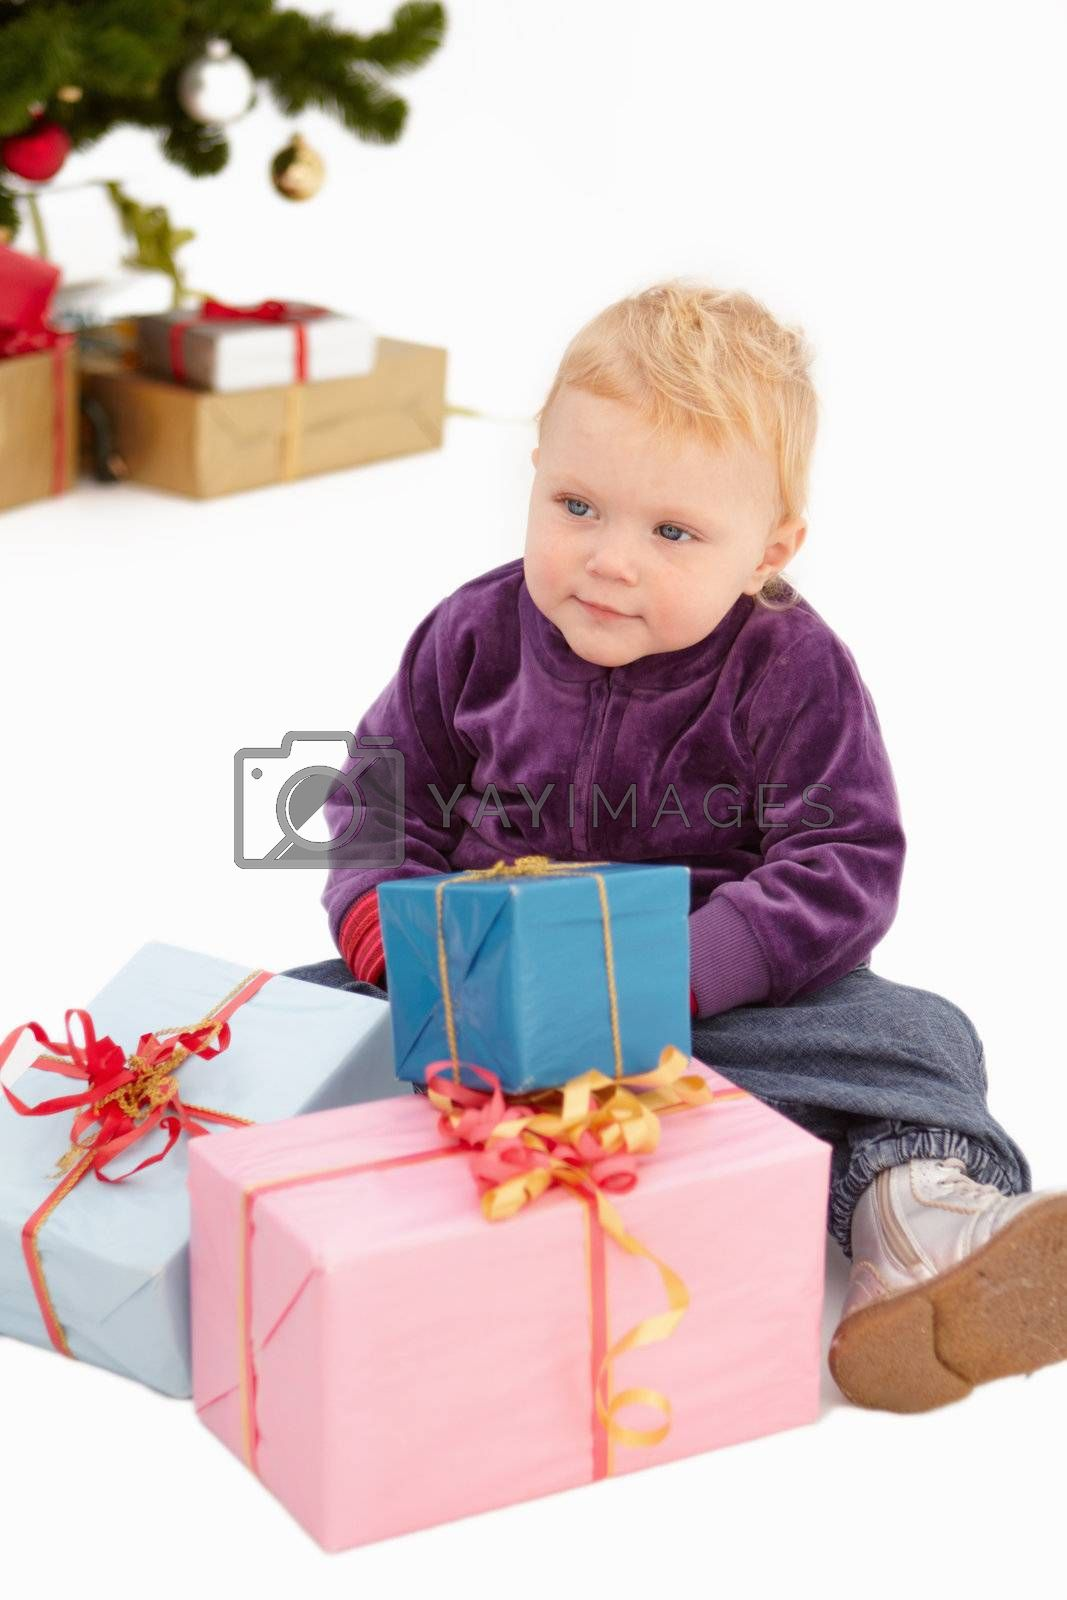 Royalty free image of Christmas - Look at all my presents by FreedomImage